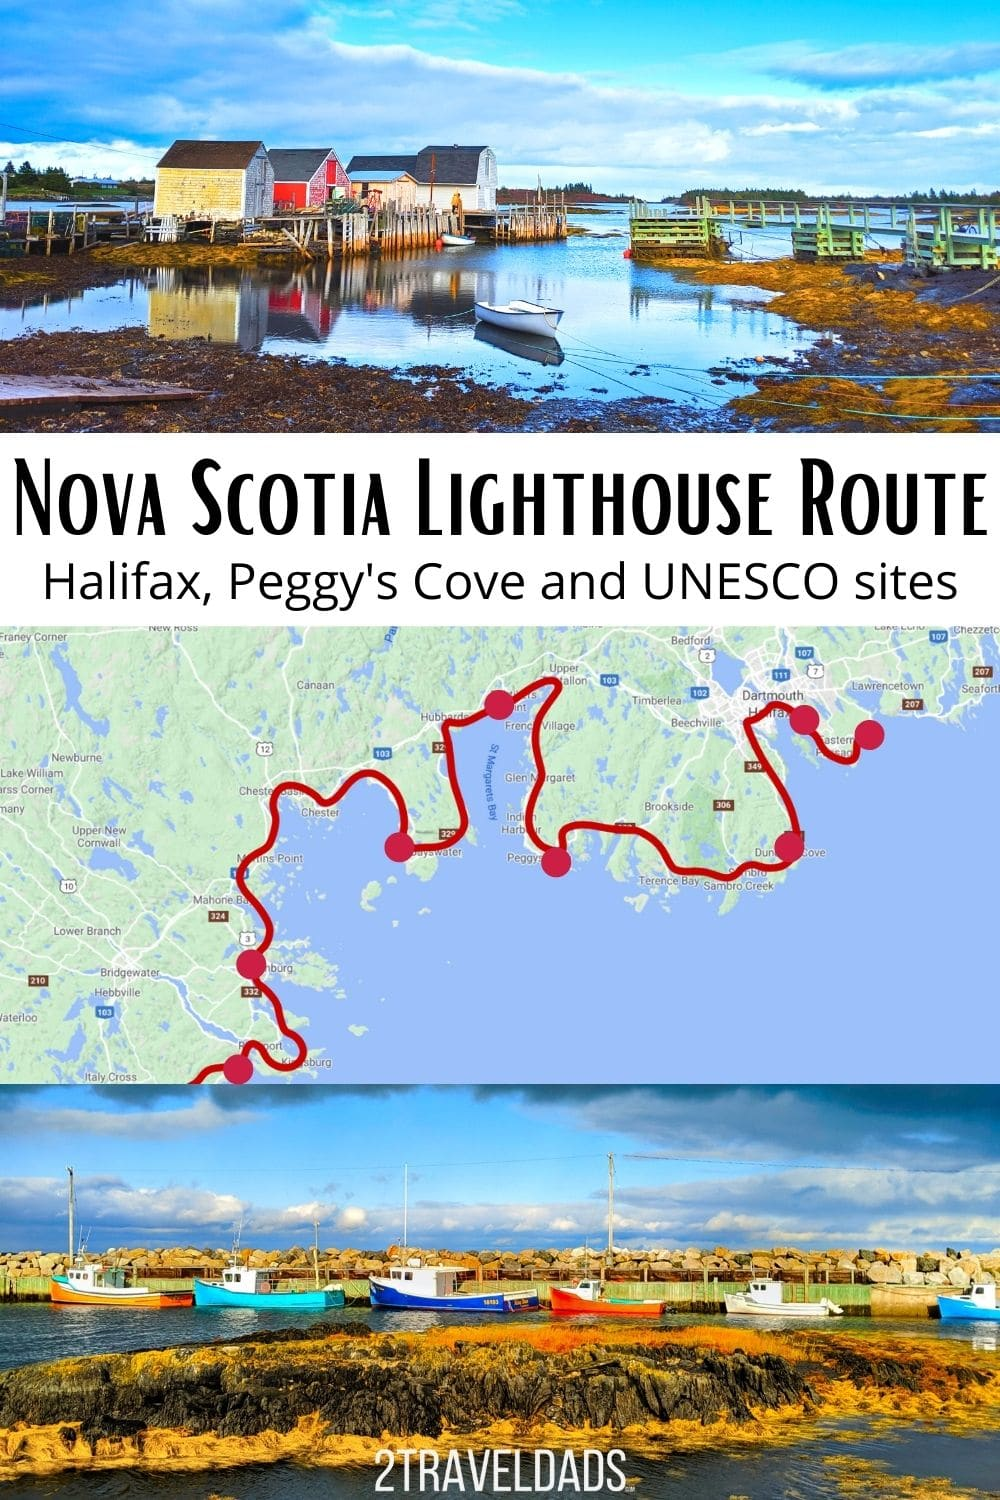 The best fall road trip we've done to date has been around Nova Scotia, and particularly the south shore along the Nova Scotia Lighthouse Route. Colorful towns and epic coastal wilderness make it unique and gorgeous.